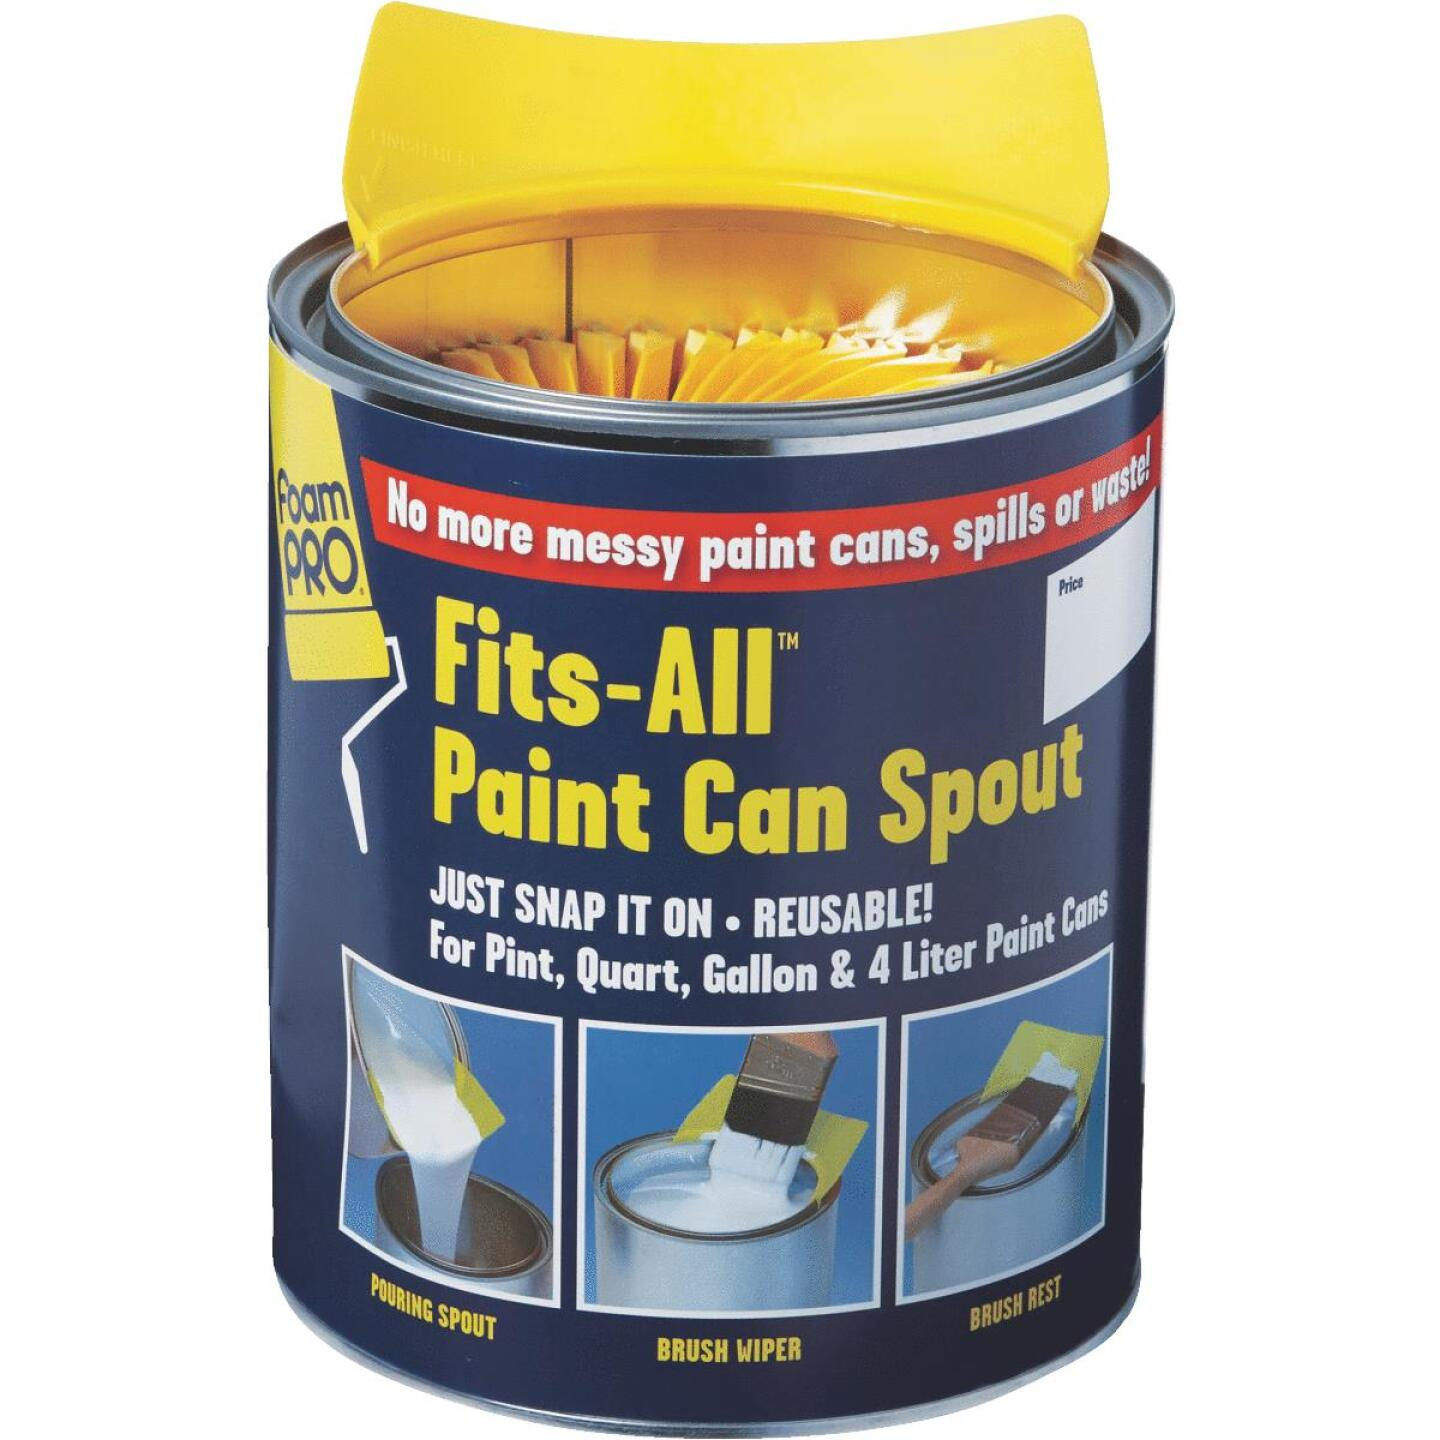 FoamPro Fits-All Snap-On Paint Can Pourer Image 3